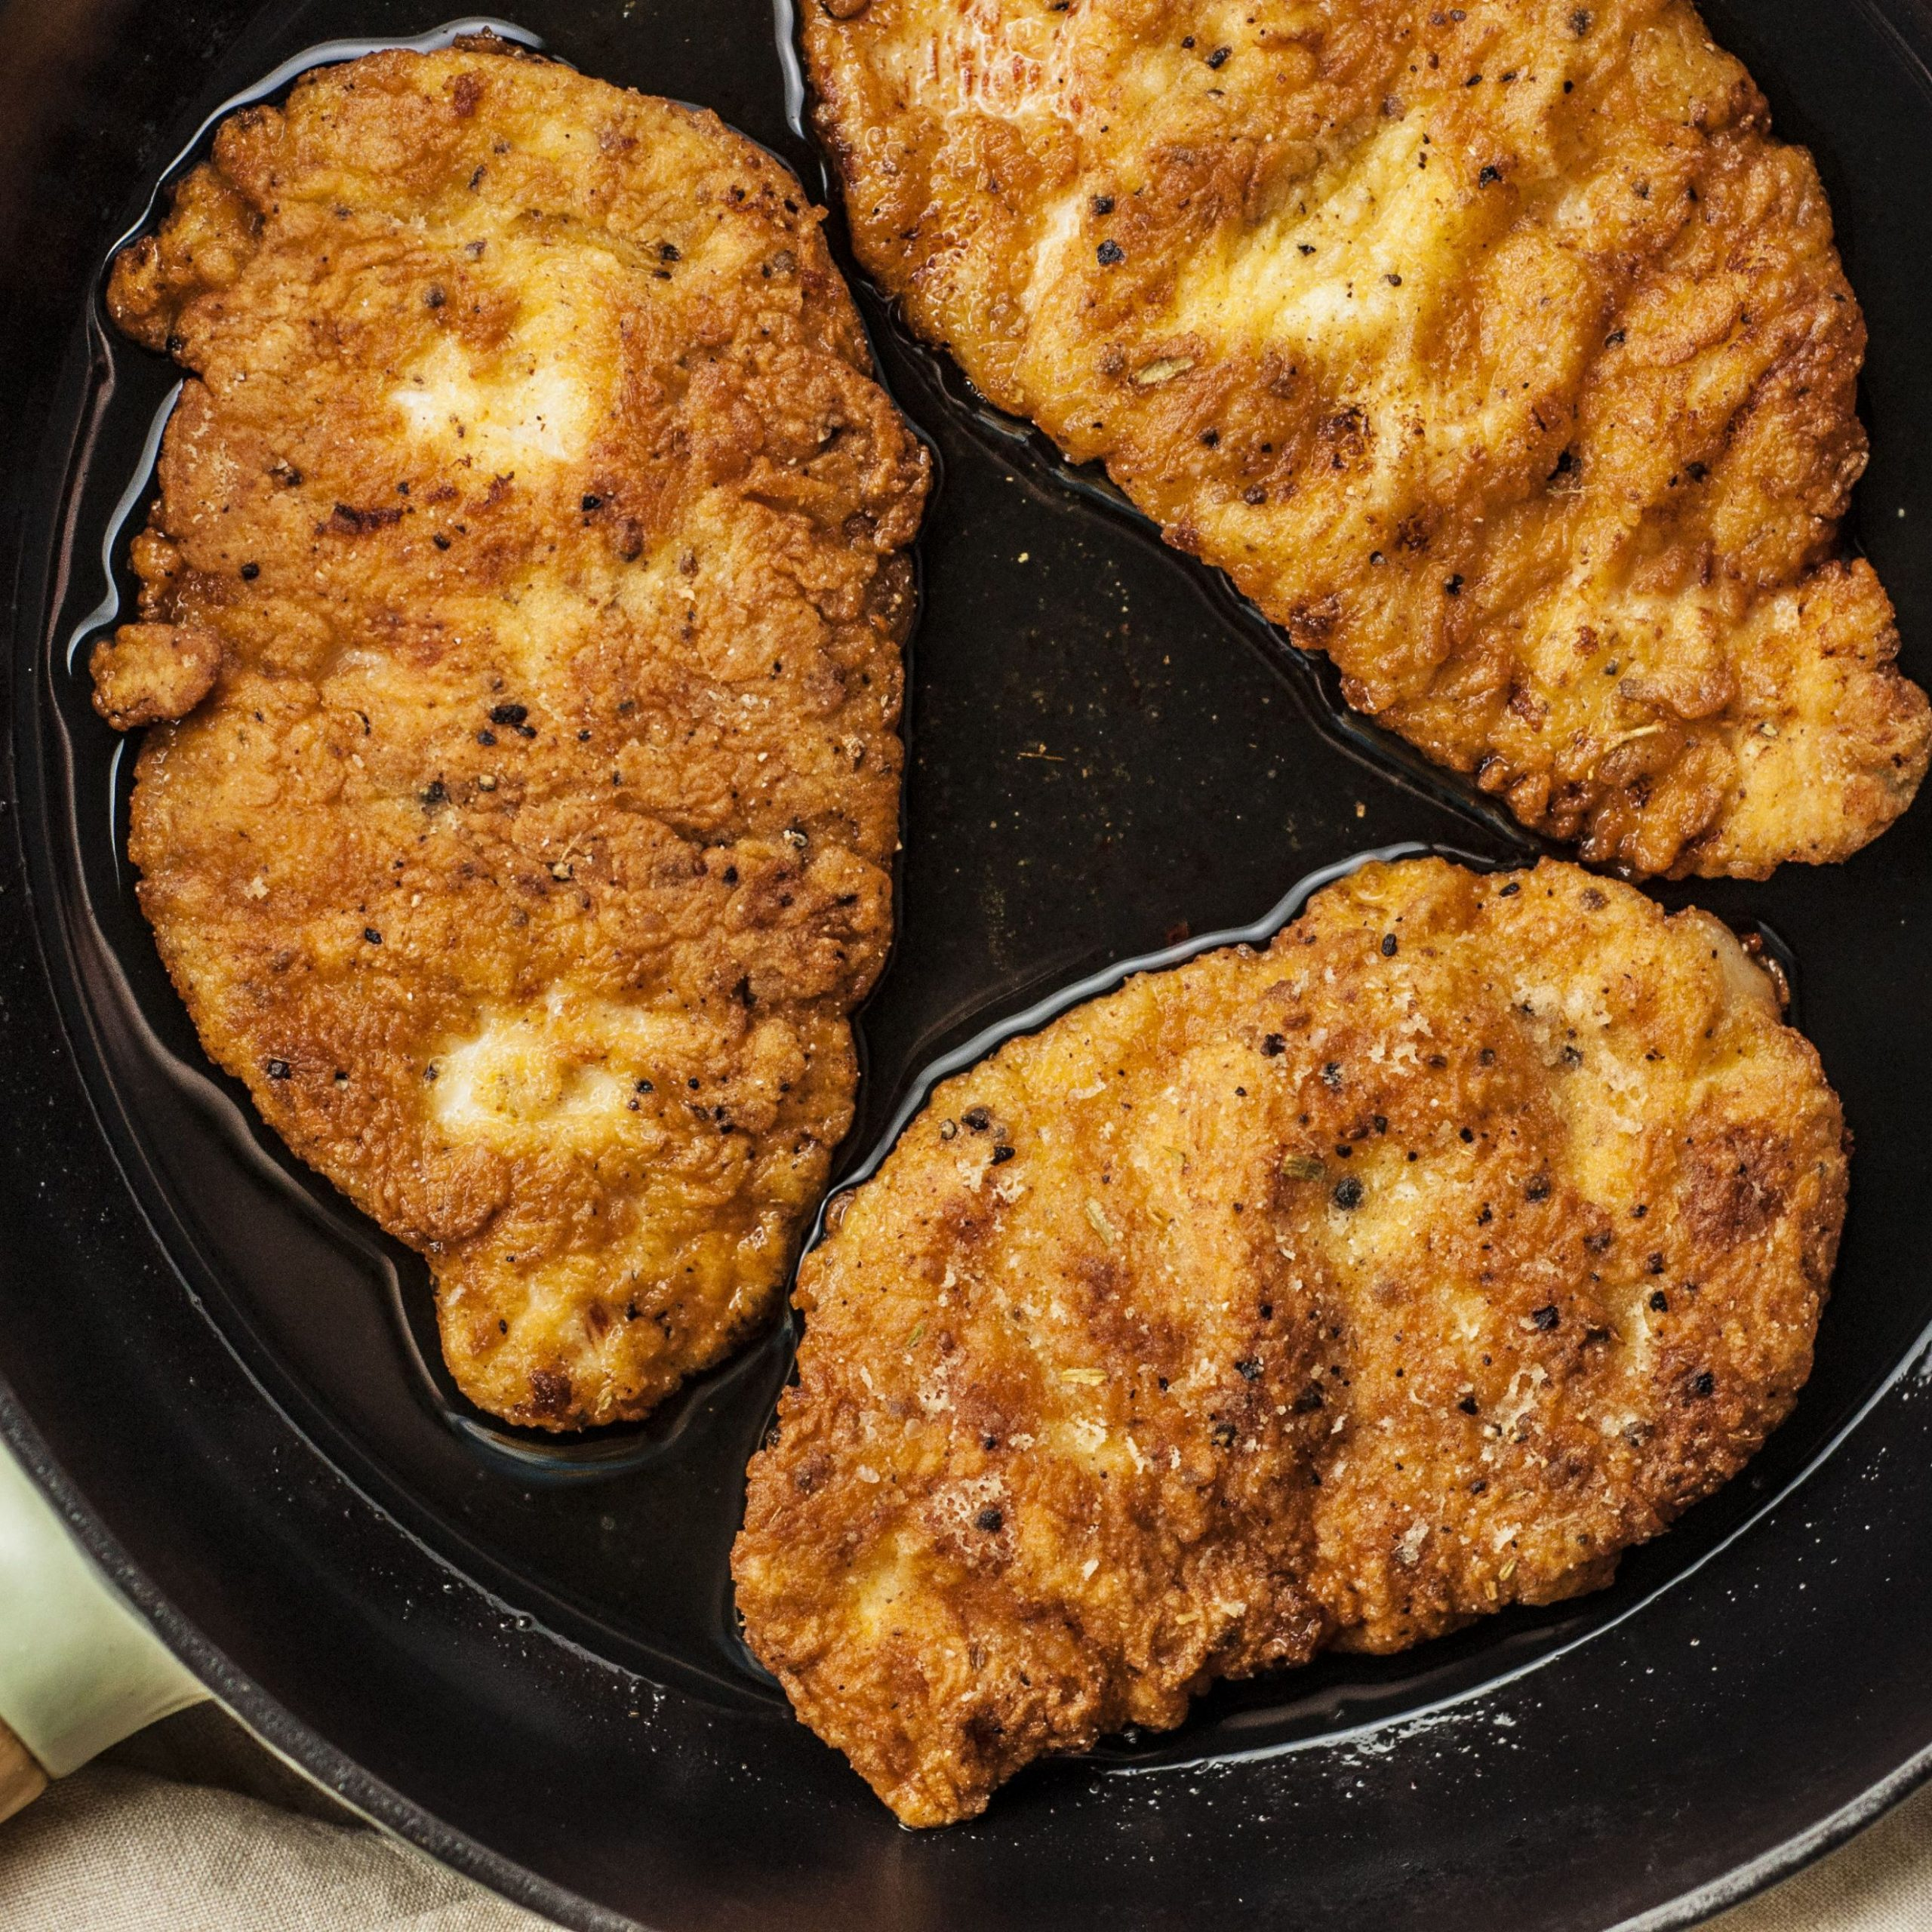 Simple Fried Chicken Breast Cutlets - Recipes Chicken Breast Pan Fried